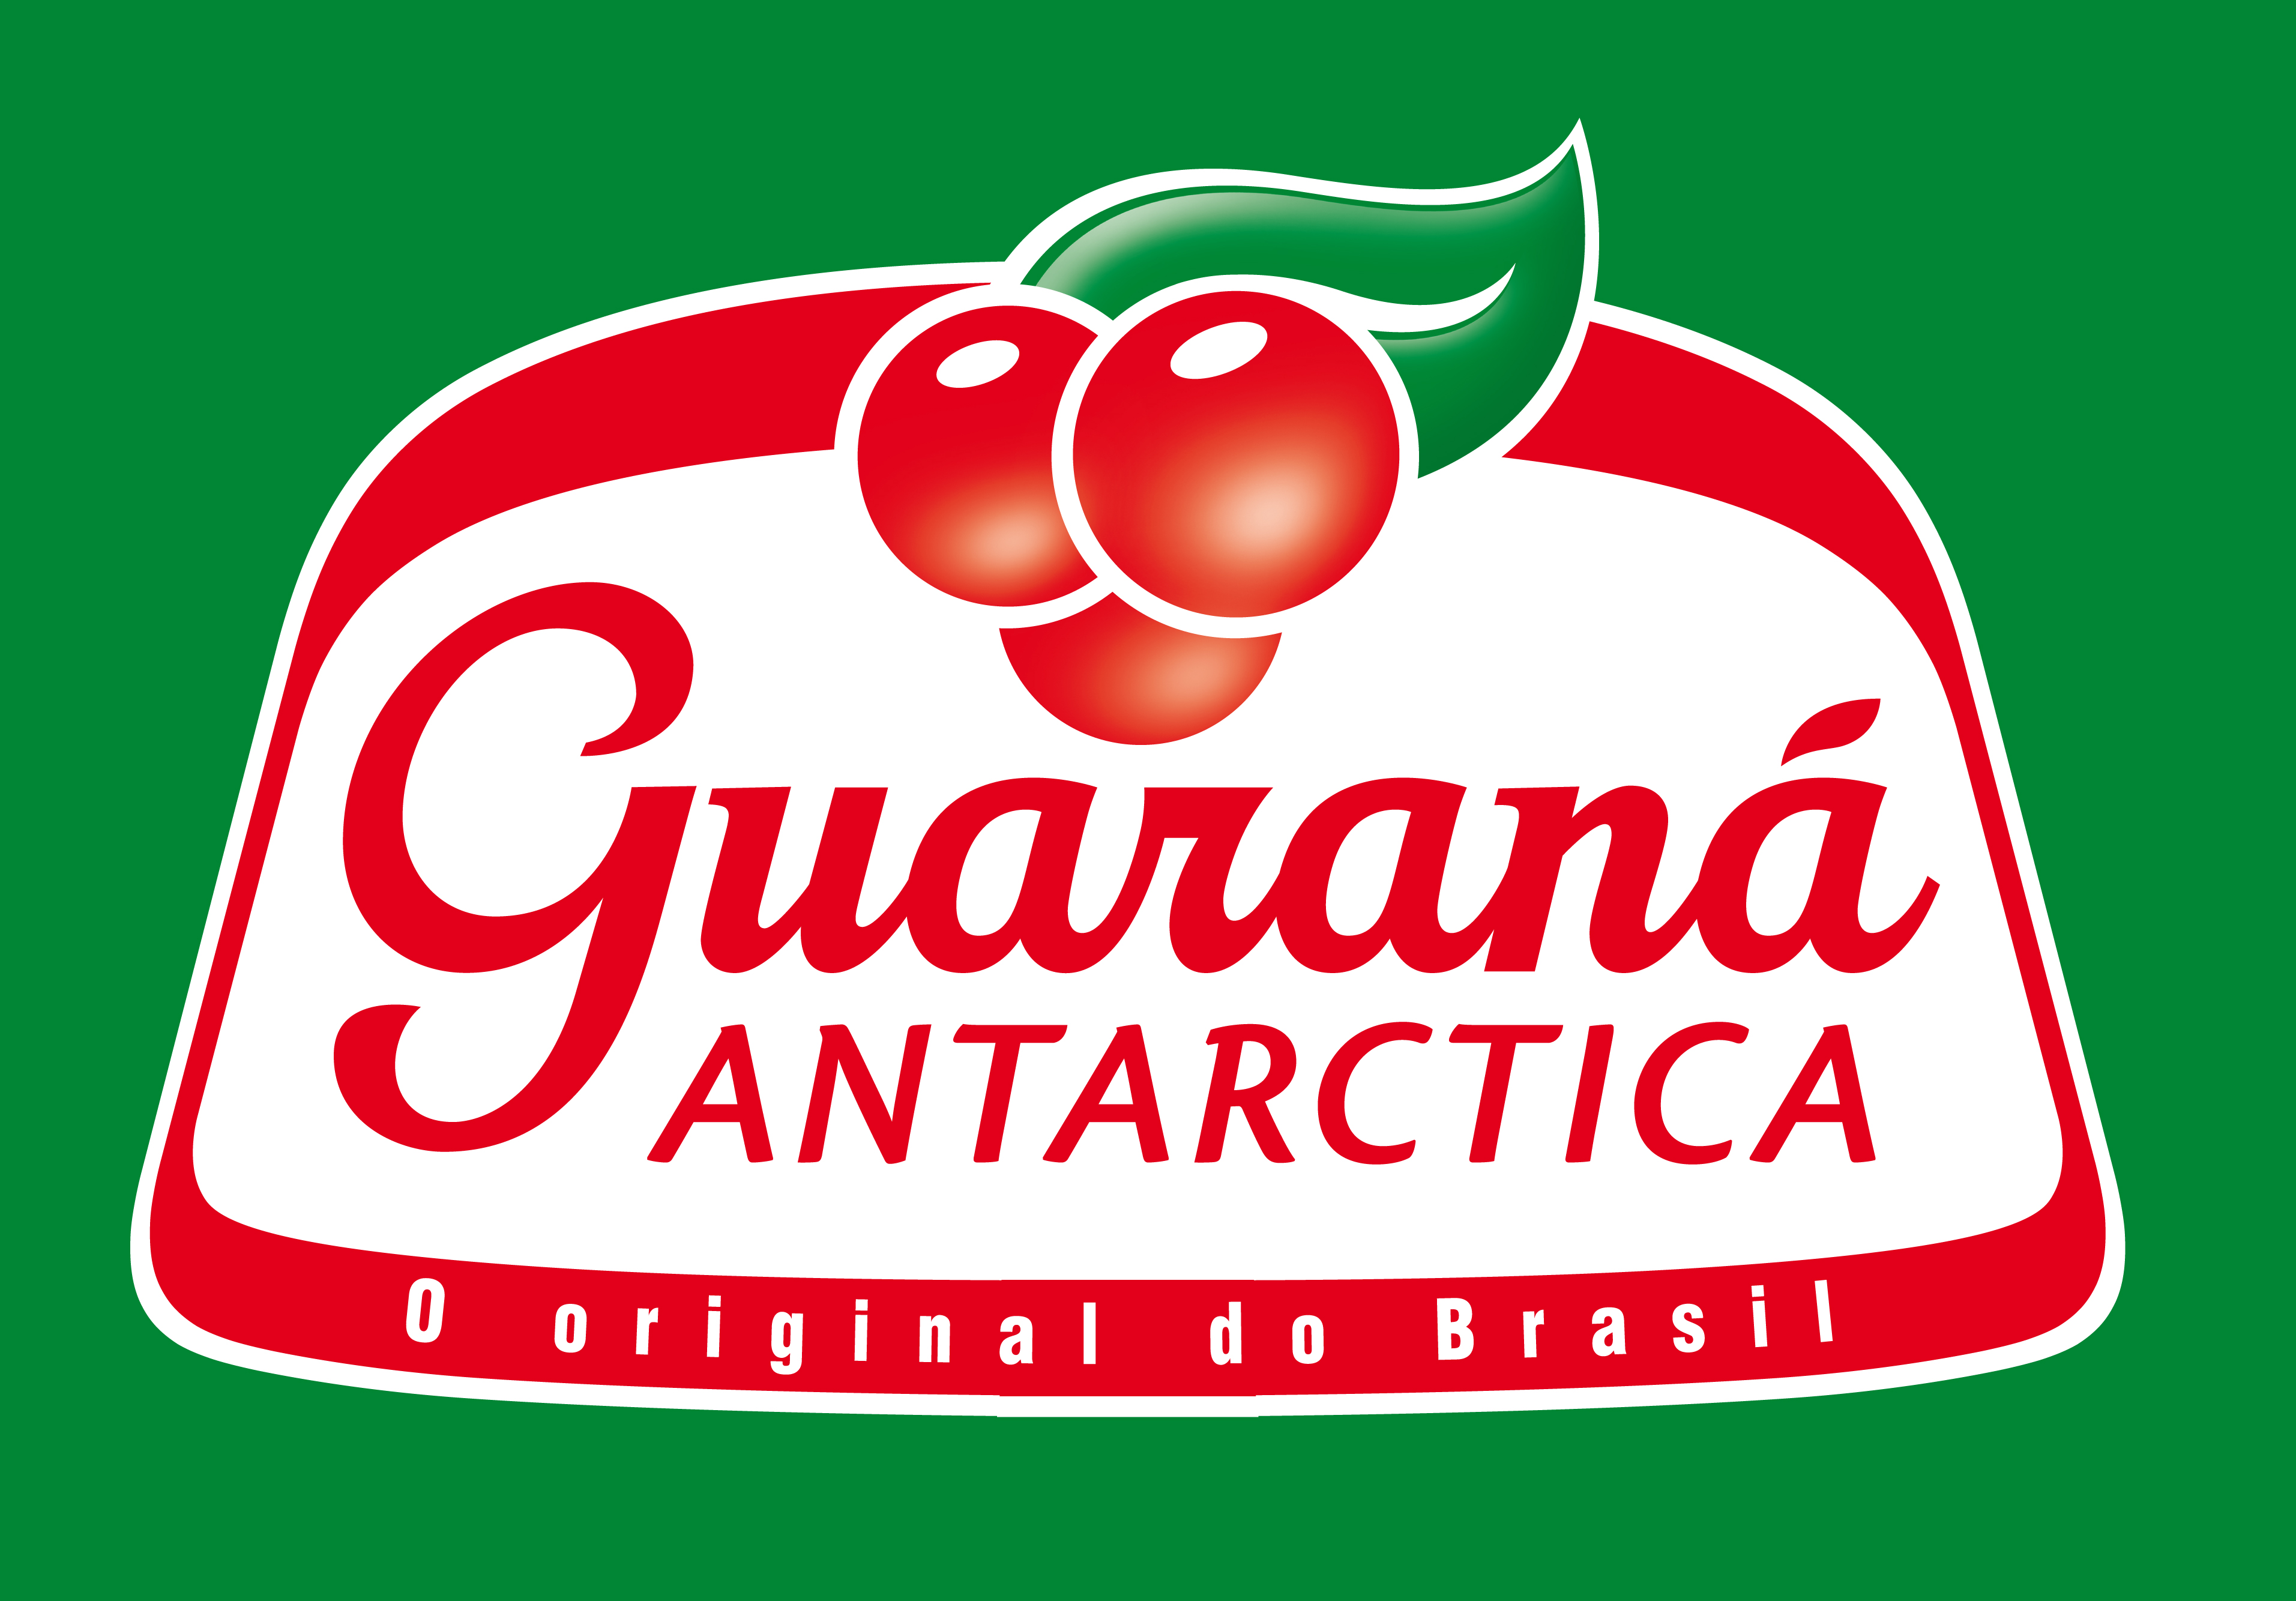 guarana antartica Check out guaraná antarctica facebook statistics like the number of fans, engagement rate and fan distribution by country.